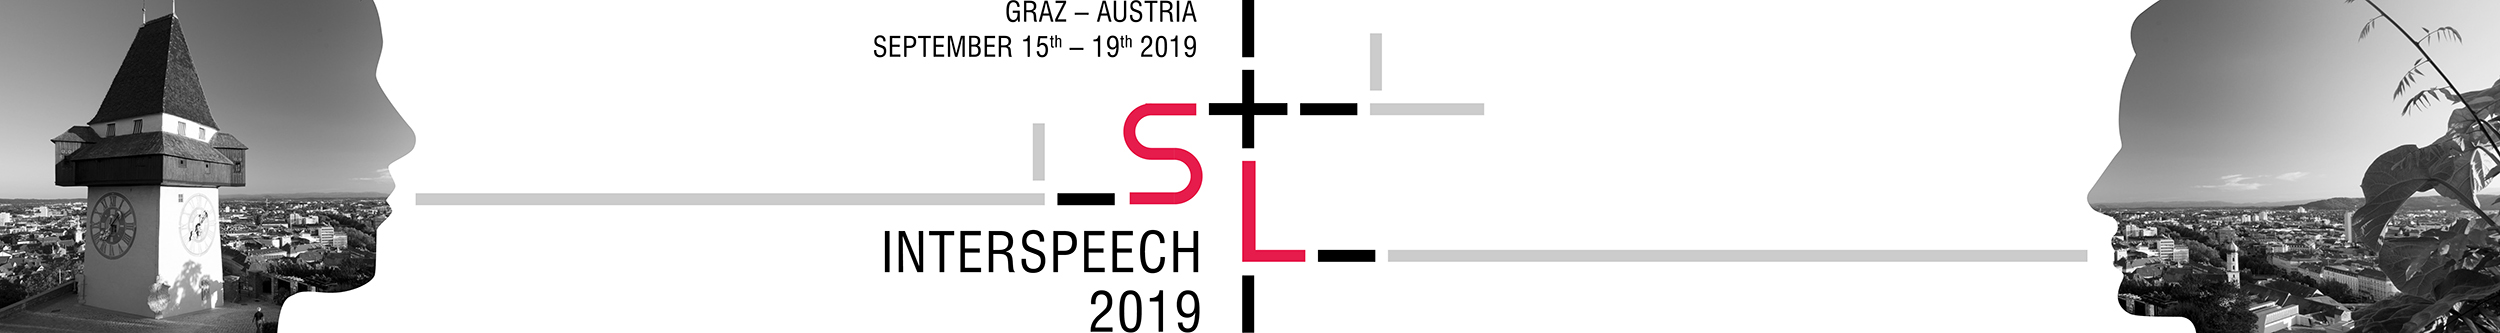 INTERSPEECH 2019 - Tutorials